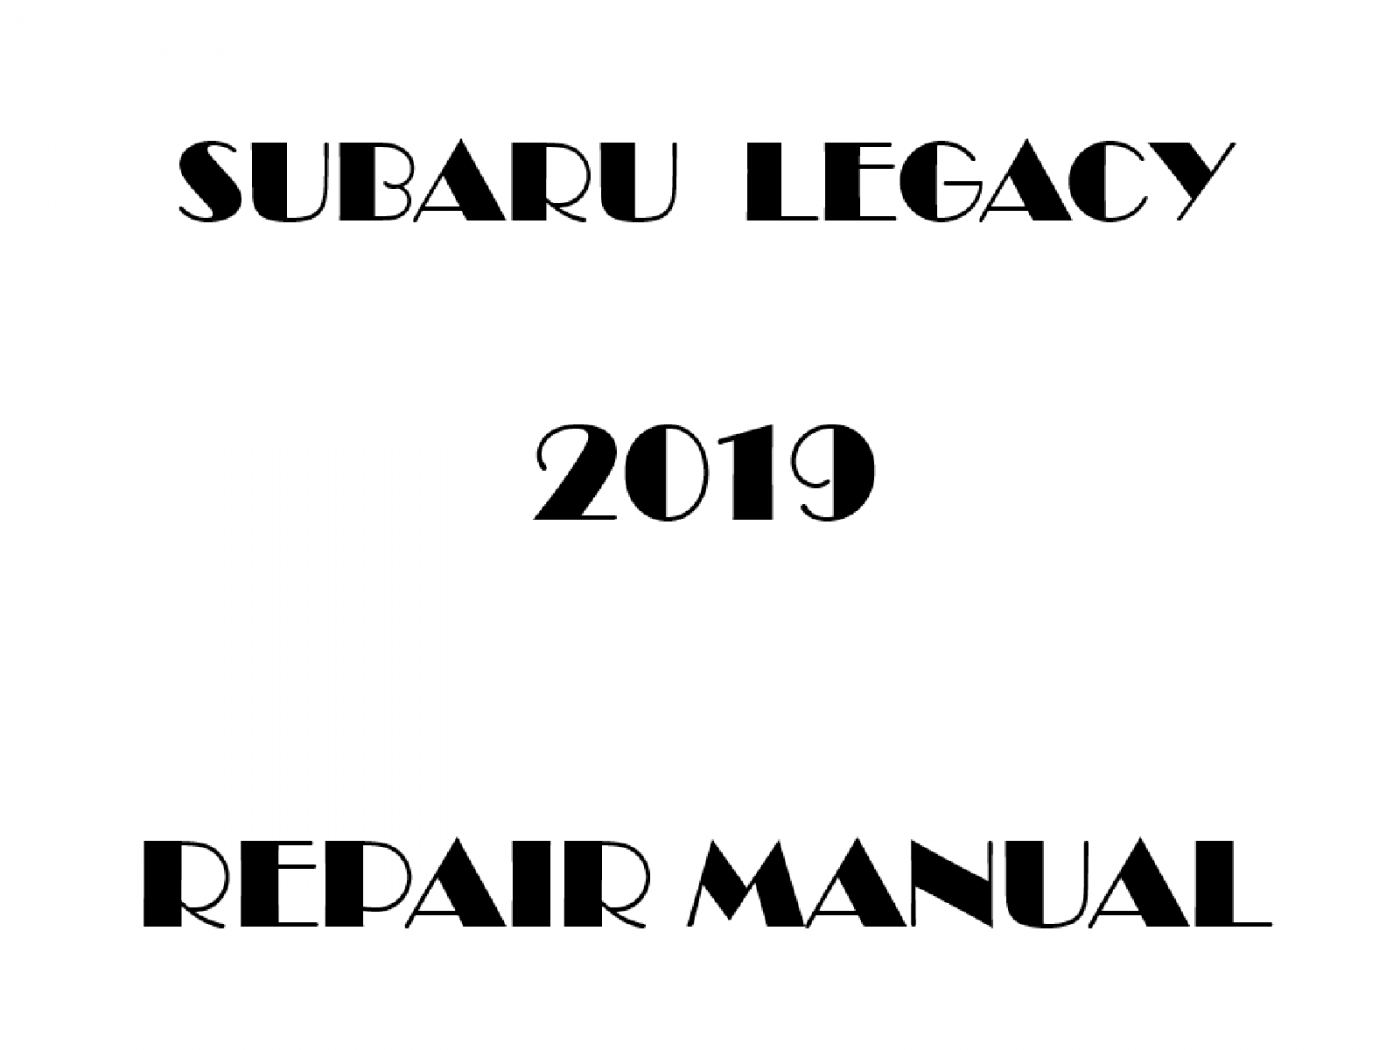 2019 Subaru Legacy repair manual